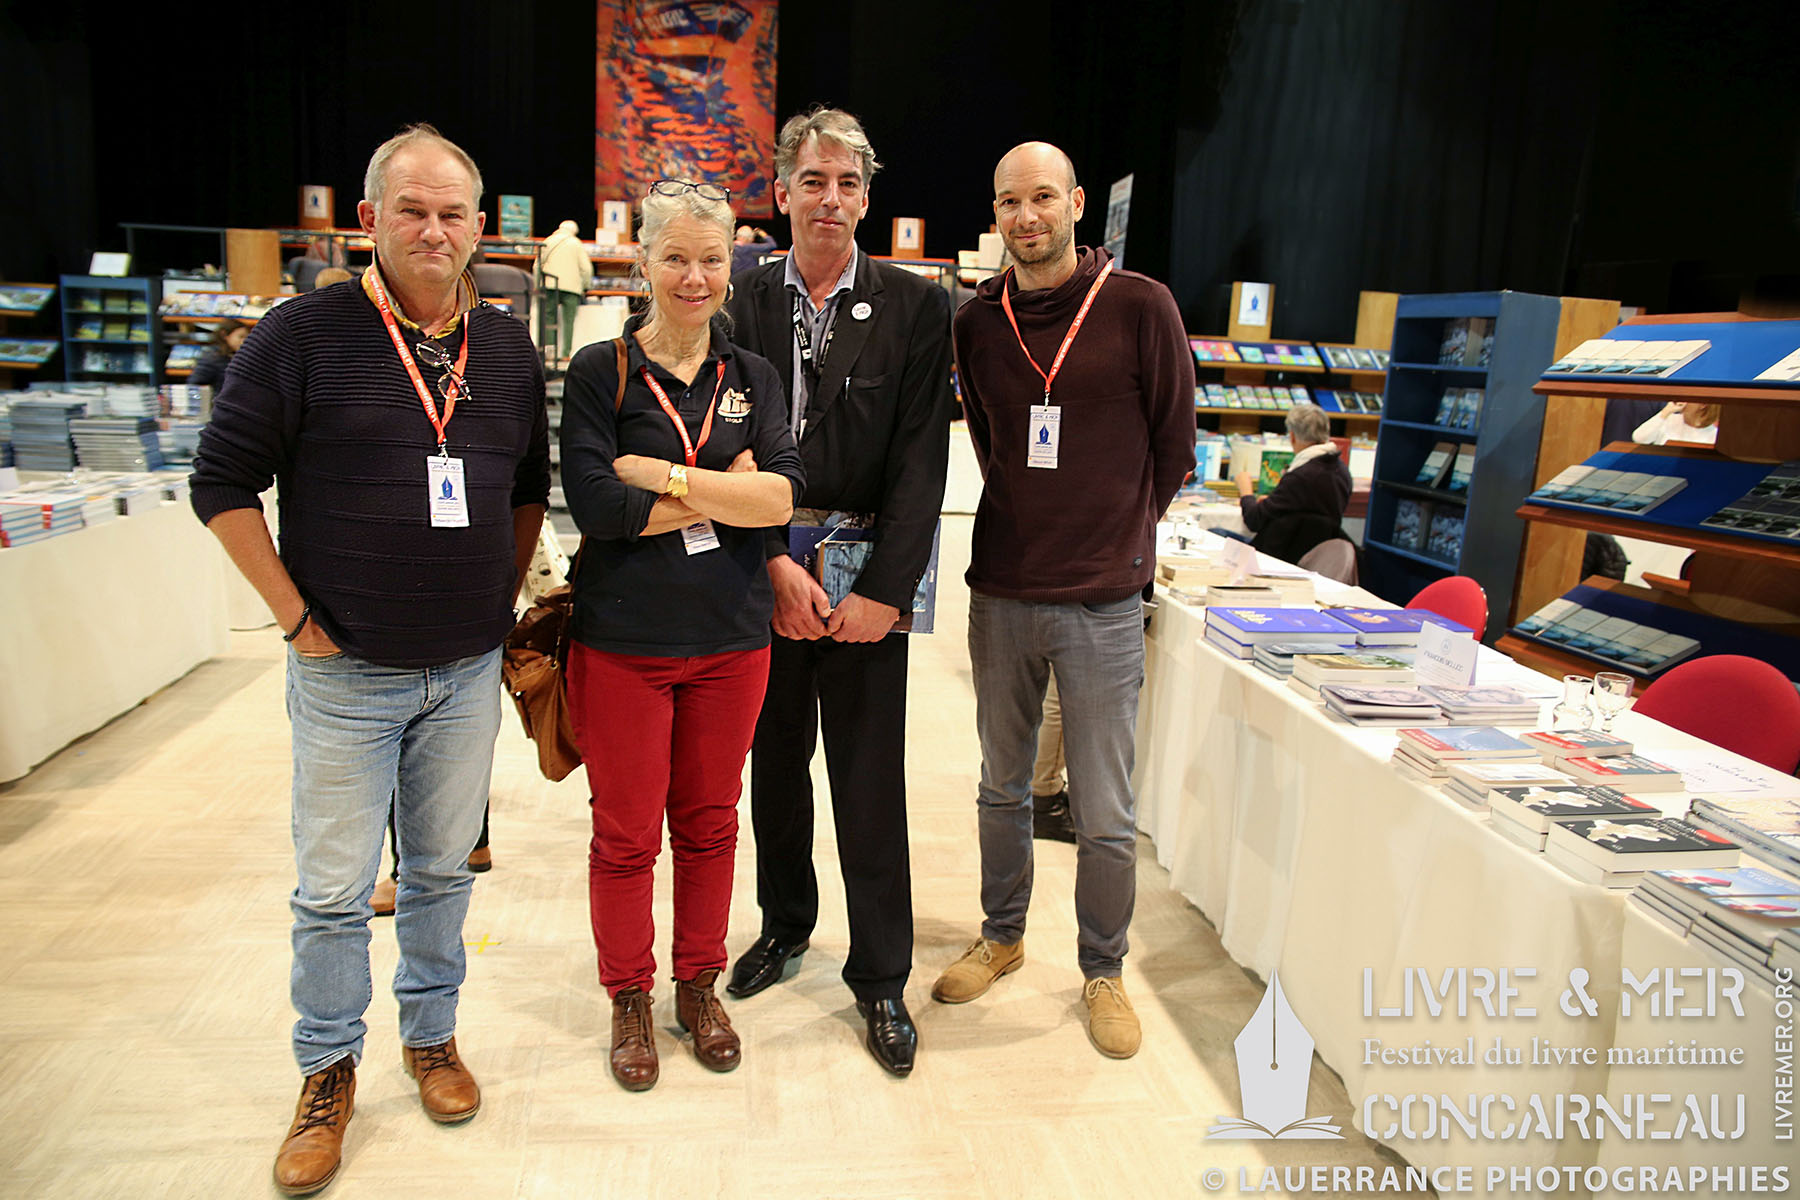 Philippe Gloaguen, Anne Smith, BHLG & Clément Belin © Lauerrance Photographies